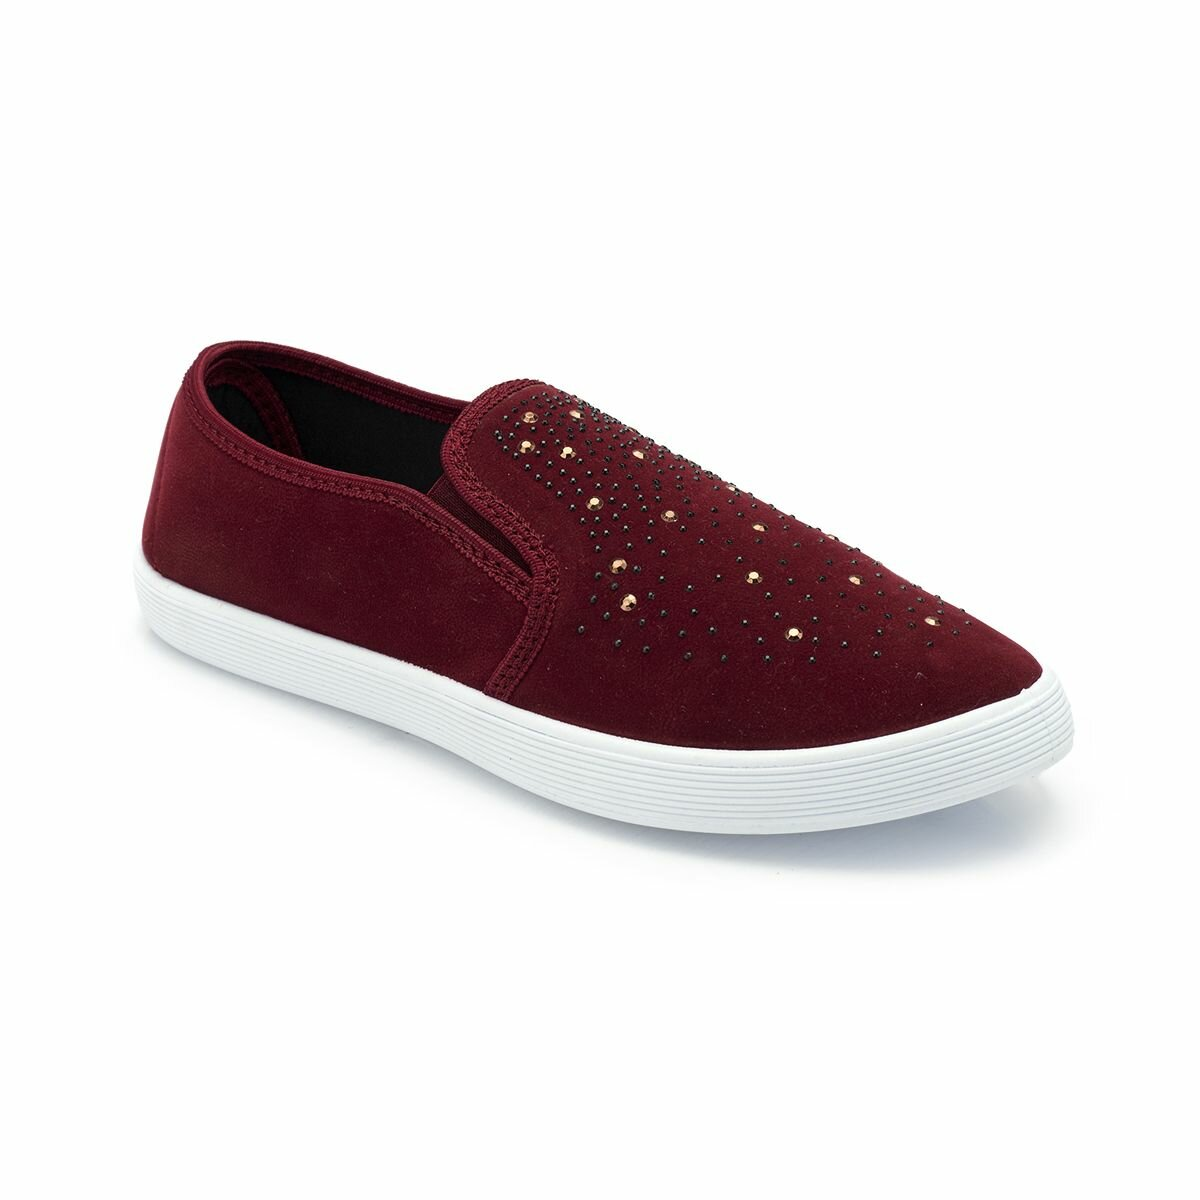 FLO 82. 311070.Z Burgundy Women Slip On Shoes Polaris